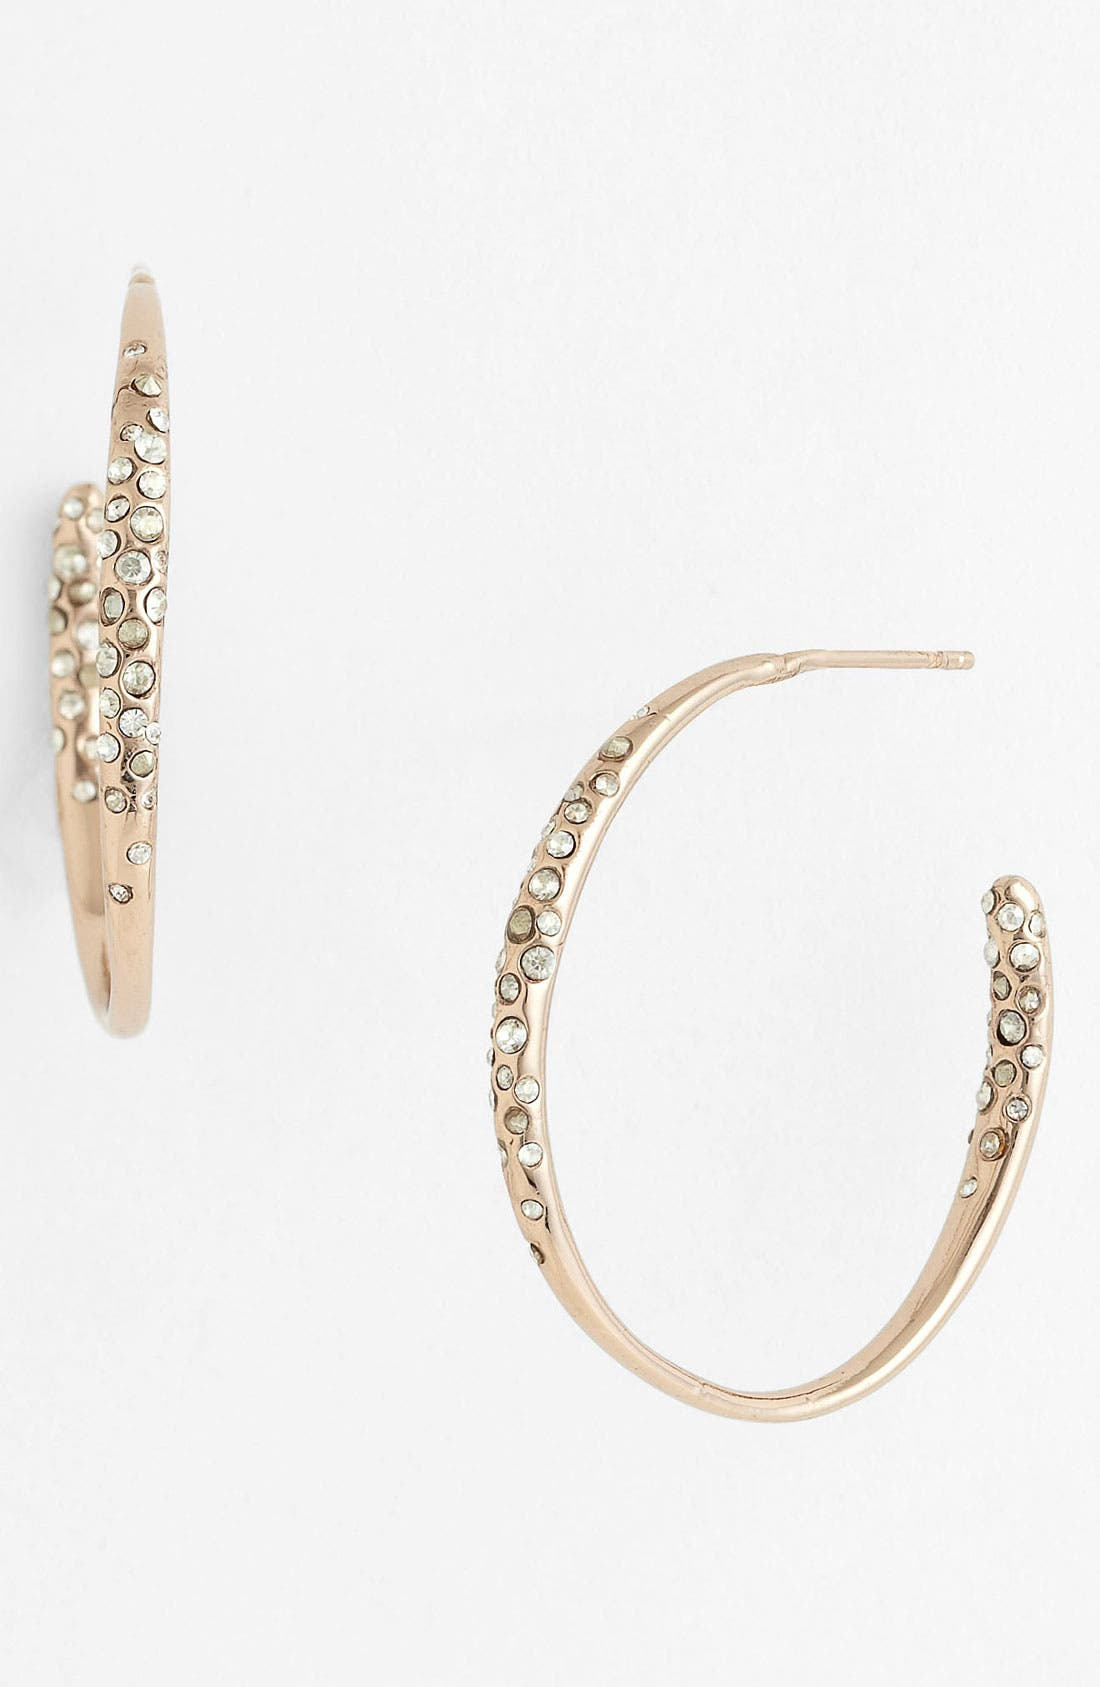 Alternate Image 1 Selected - Alexis Bittar 'Miss Havisham' Small Inside Out Hoop Earrings